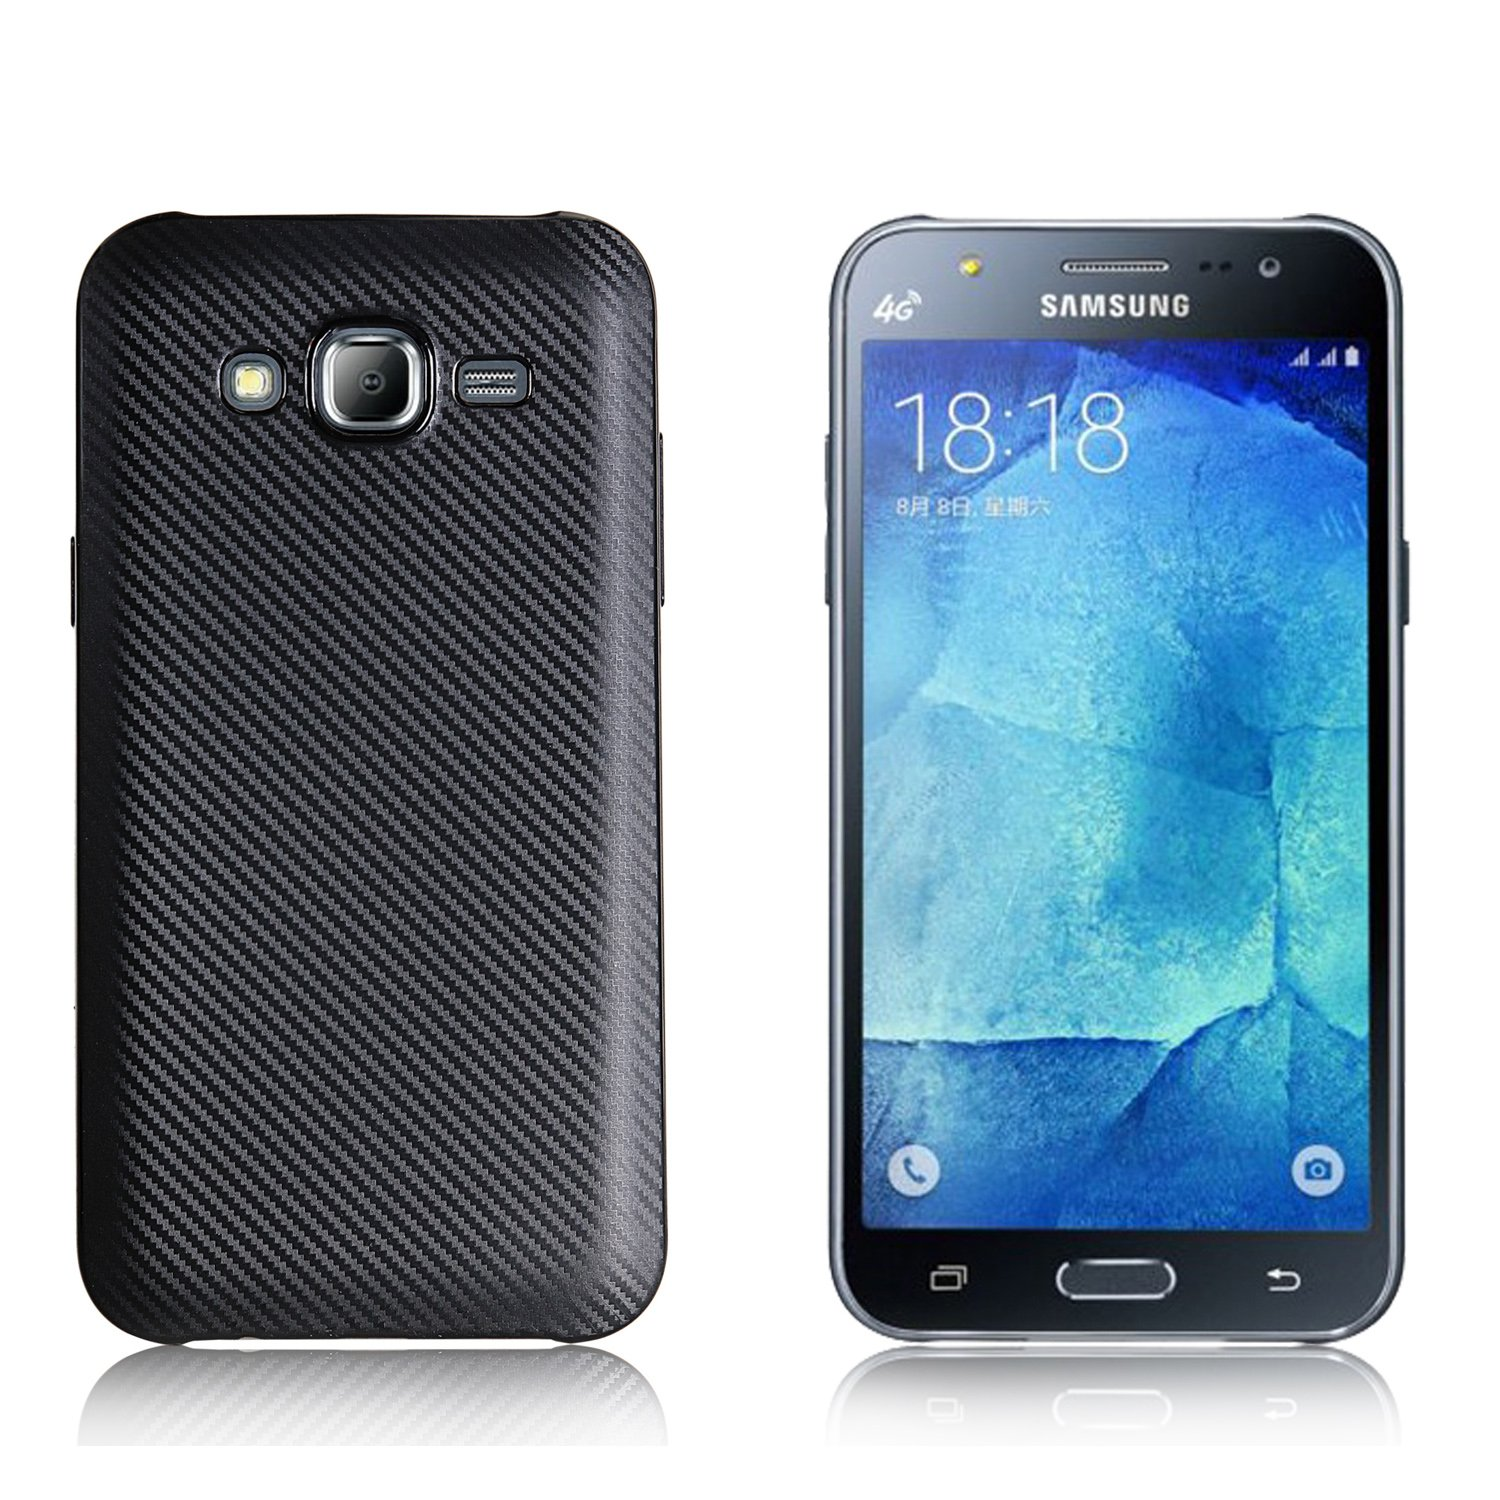 online retailer edf84 9c891 Case for Samsung Galaxy J7 Core 2017 SM-J701F/DS Case TPU Silicone Soft  Shell Cover Black